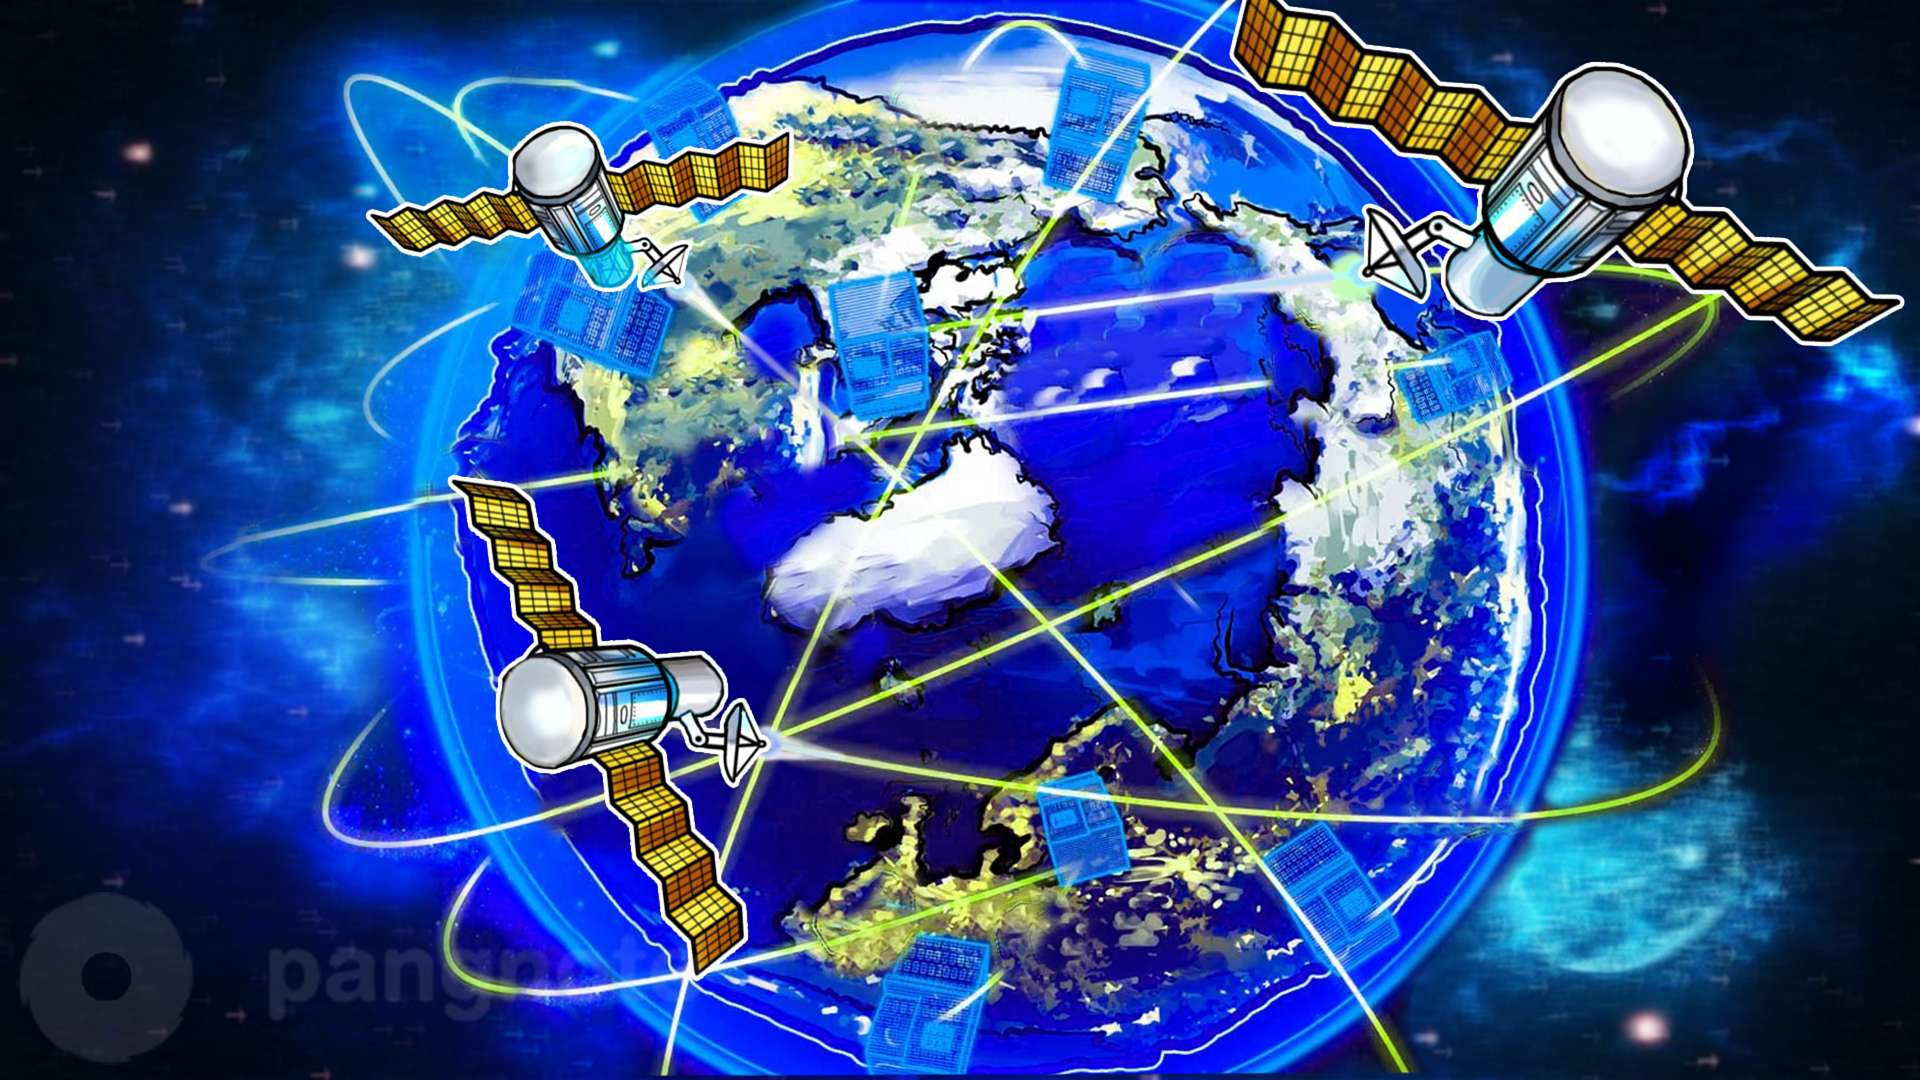 To create a global network it is proposed to use space lasers